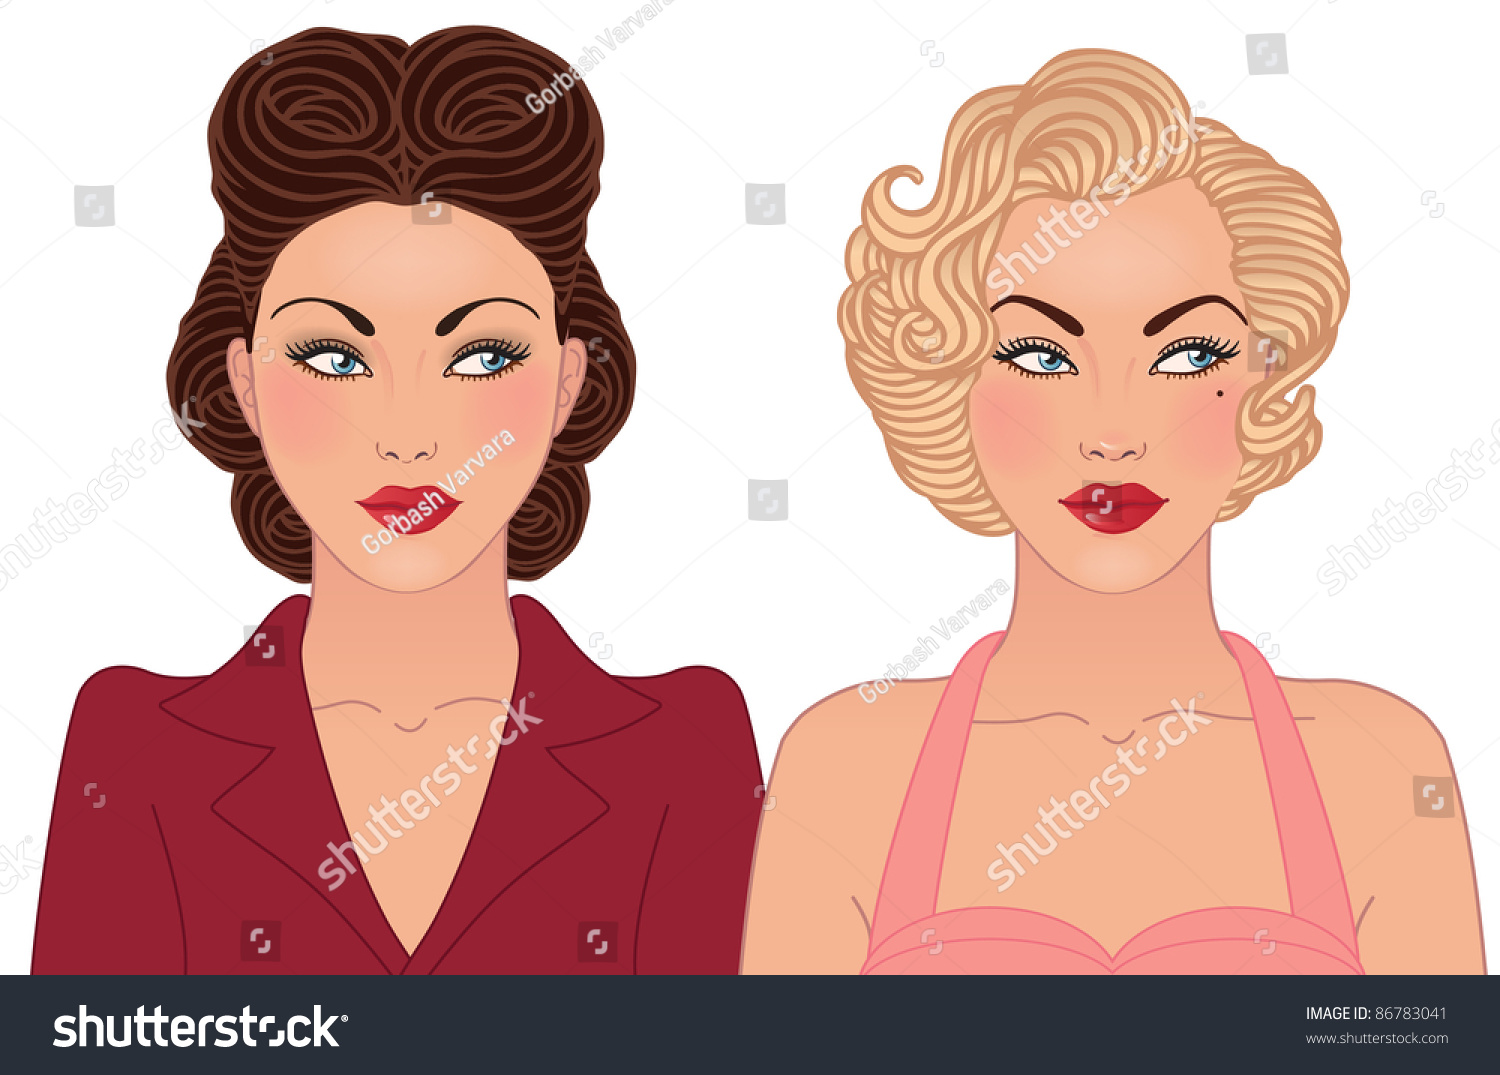 Cartoon Characters 1940s And 1950s : Hairstyle makeup decades th century stock